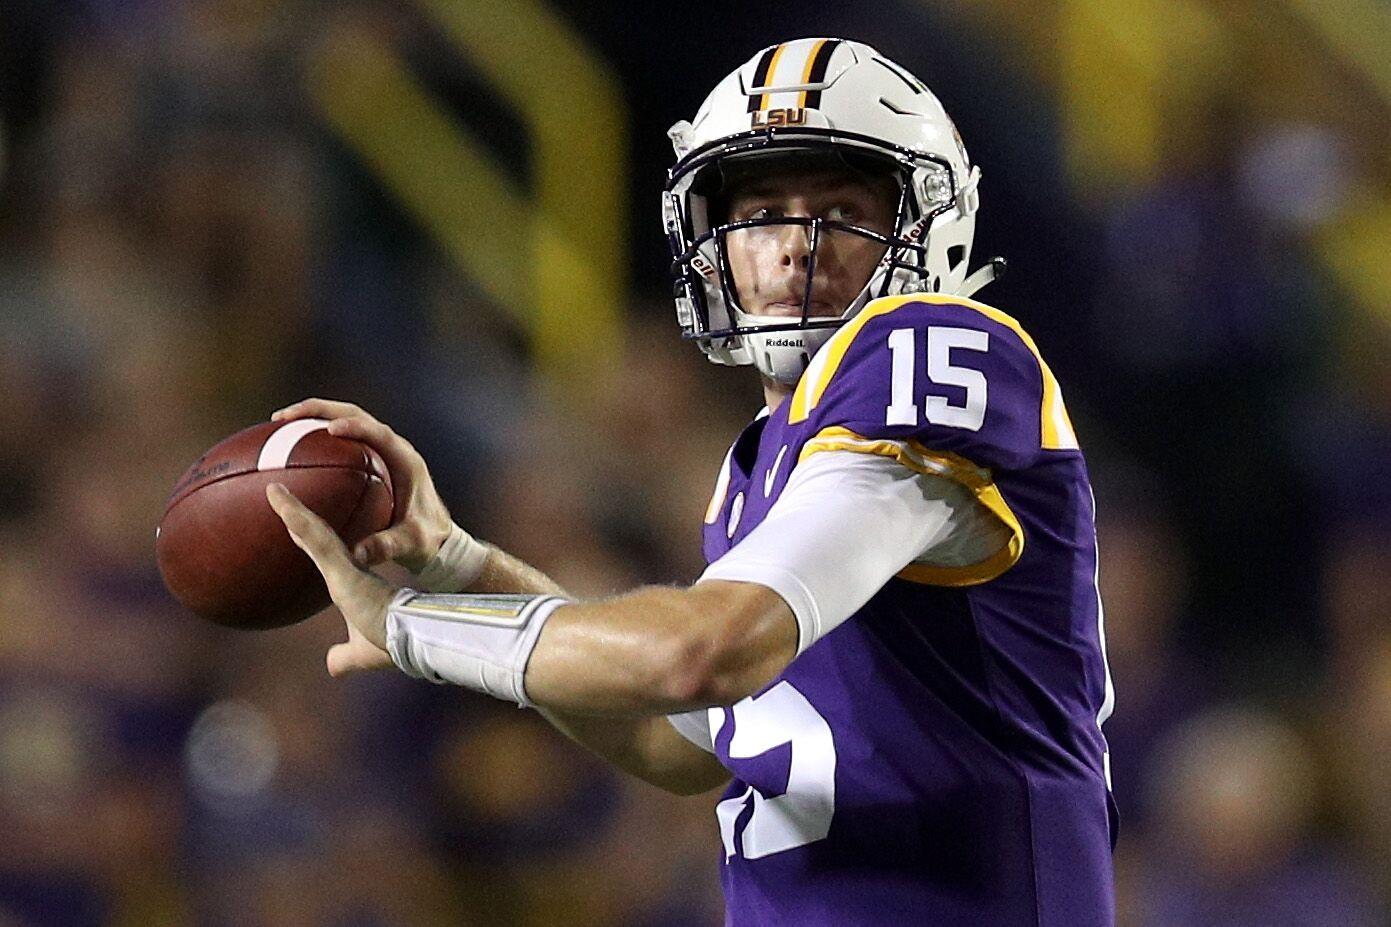 Lsu Football Will Be Relying On Quarterback Myles Brennan To Run The Offense In 2020 No One Should Envy Quarterback Myles Brennan T In 2020 Lsu Football Lsu Football